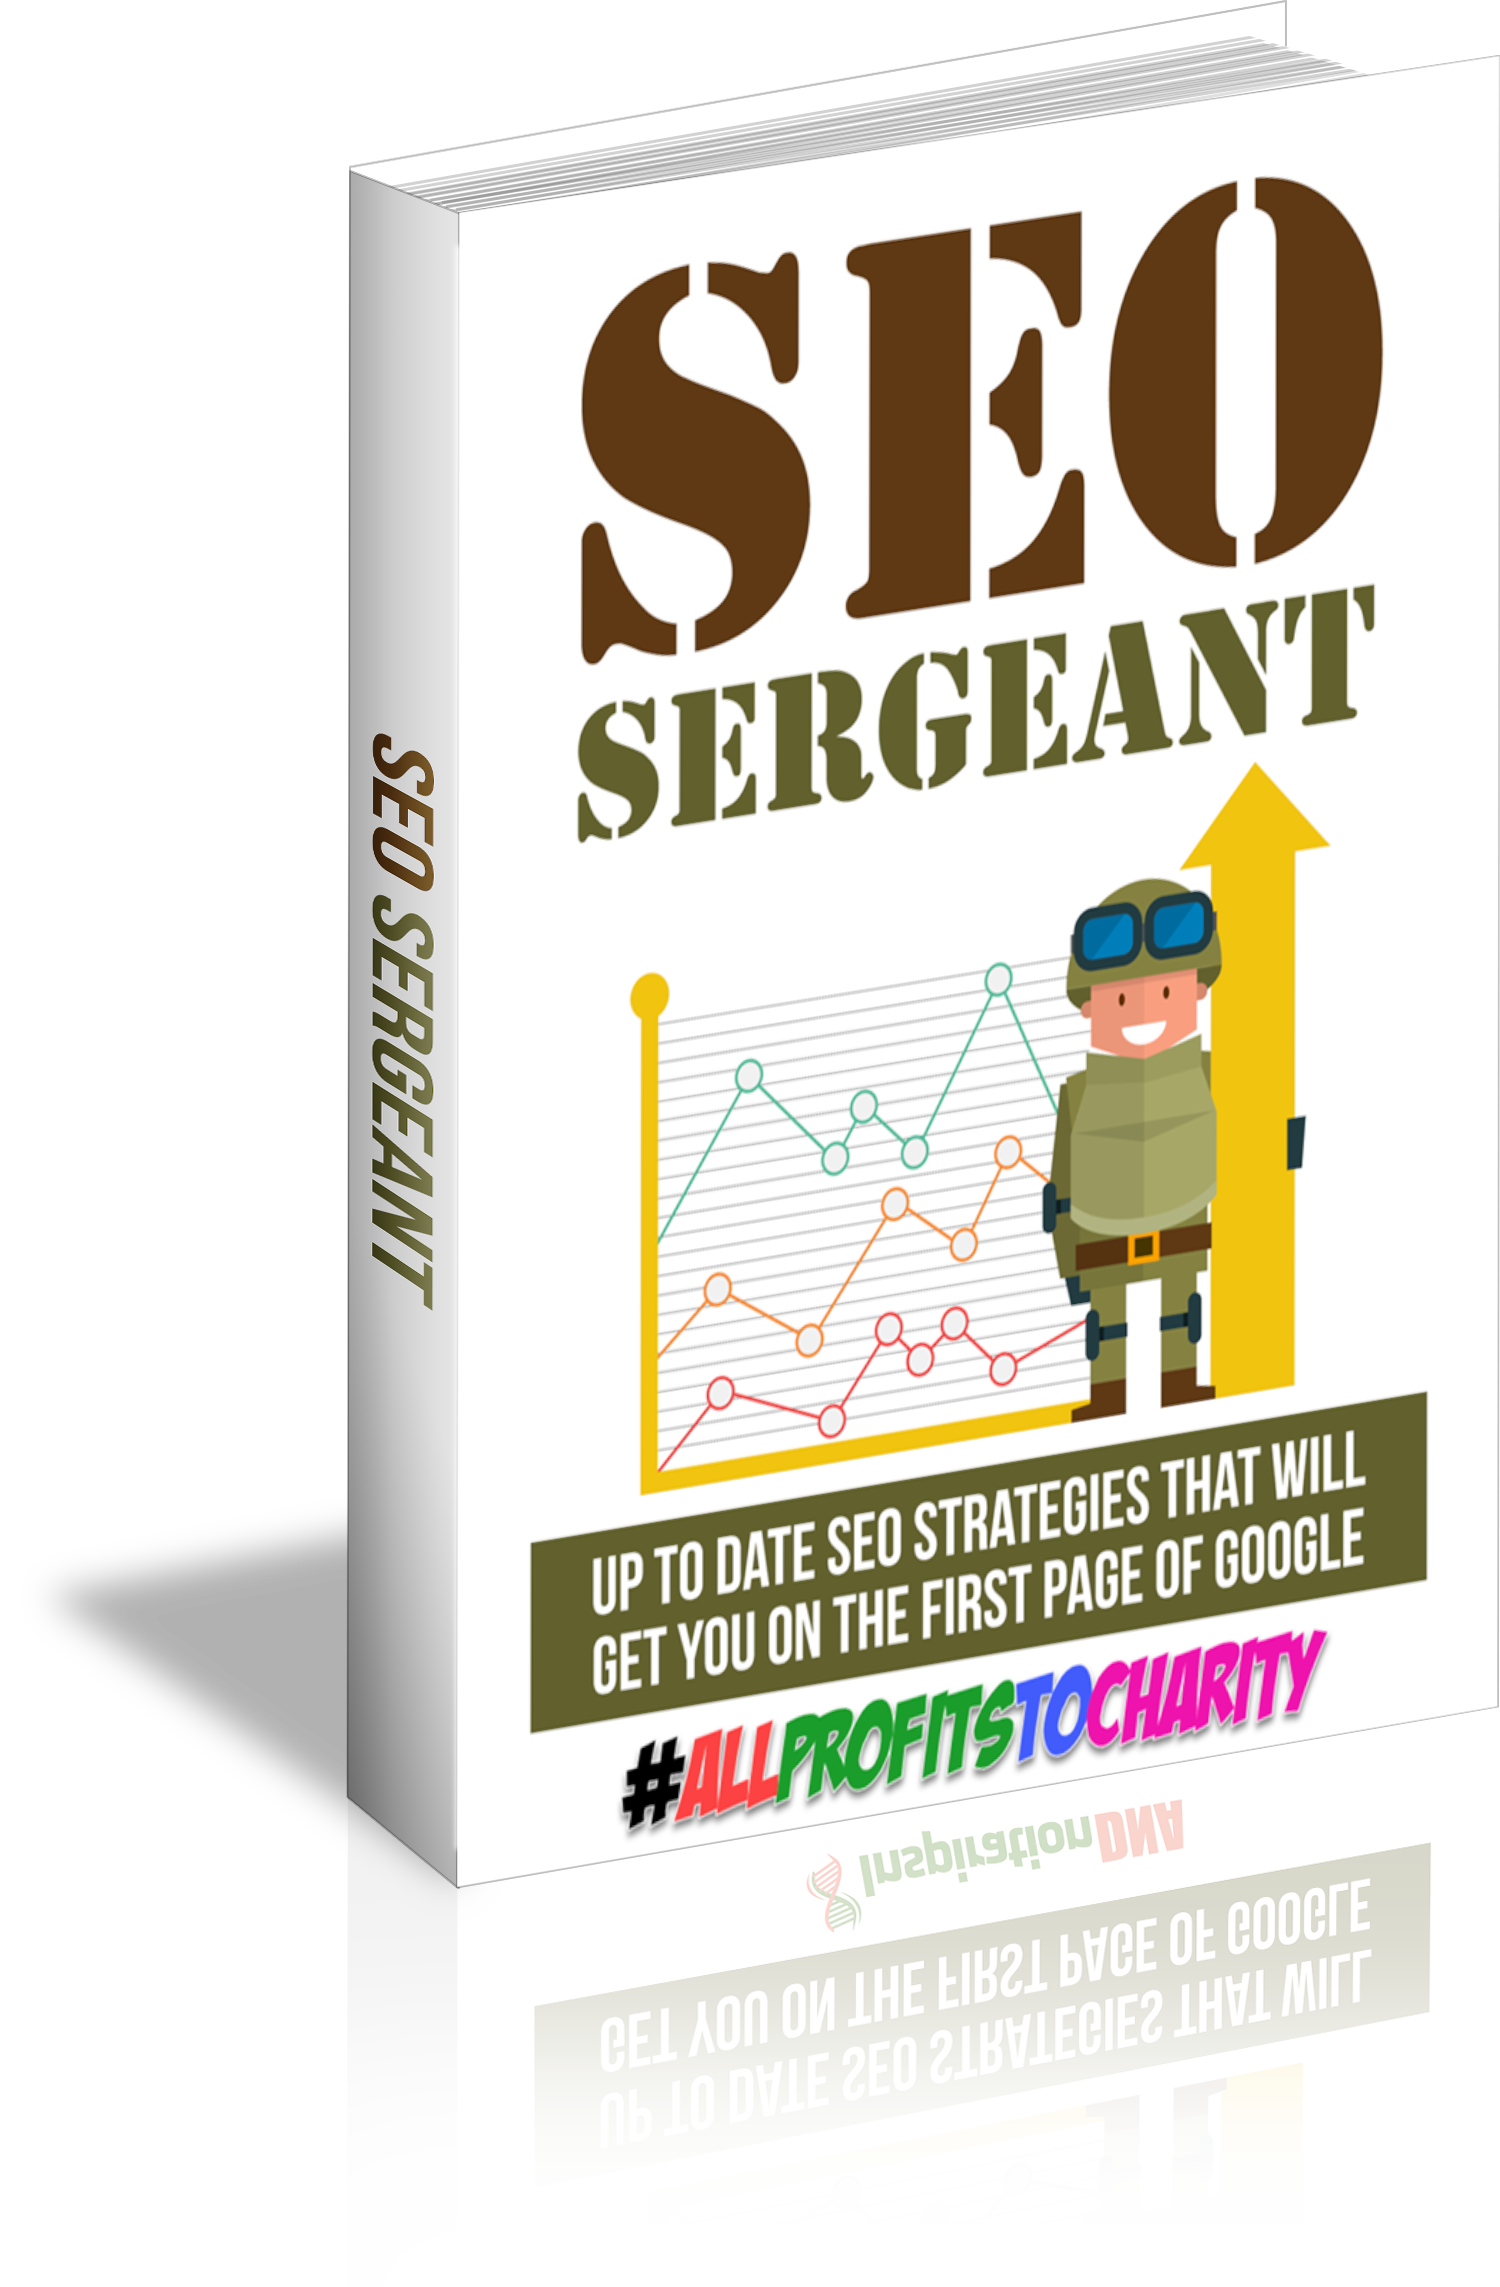 seo sergeant cover